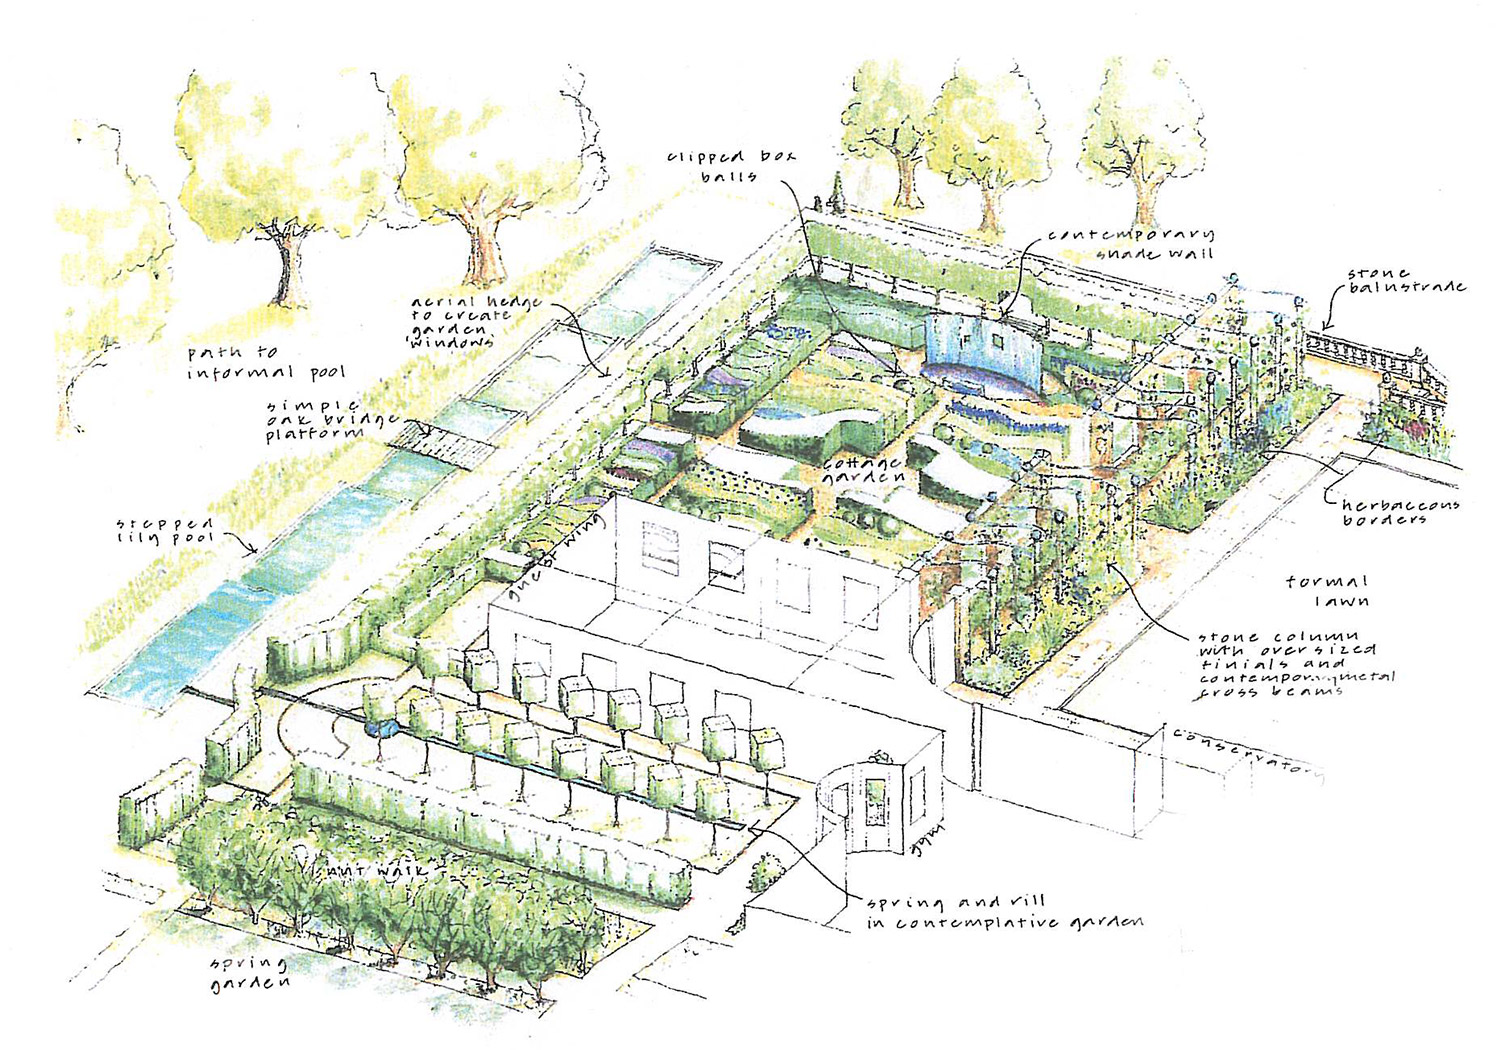 Projects-GardensEstates-NynPark-Concept2-1500x1050